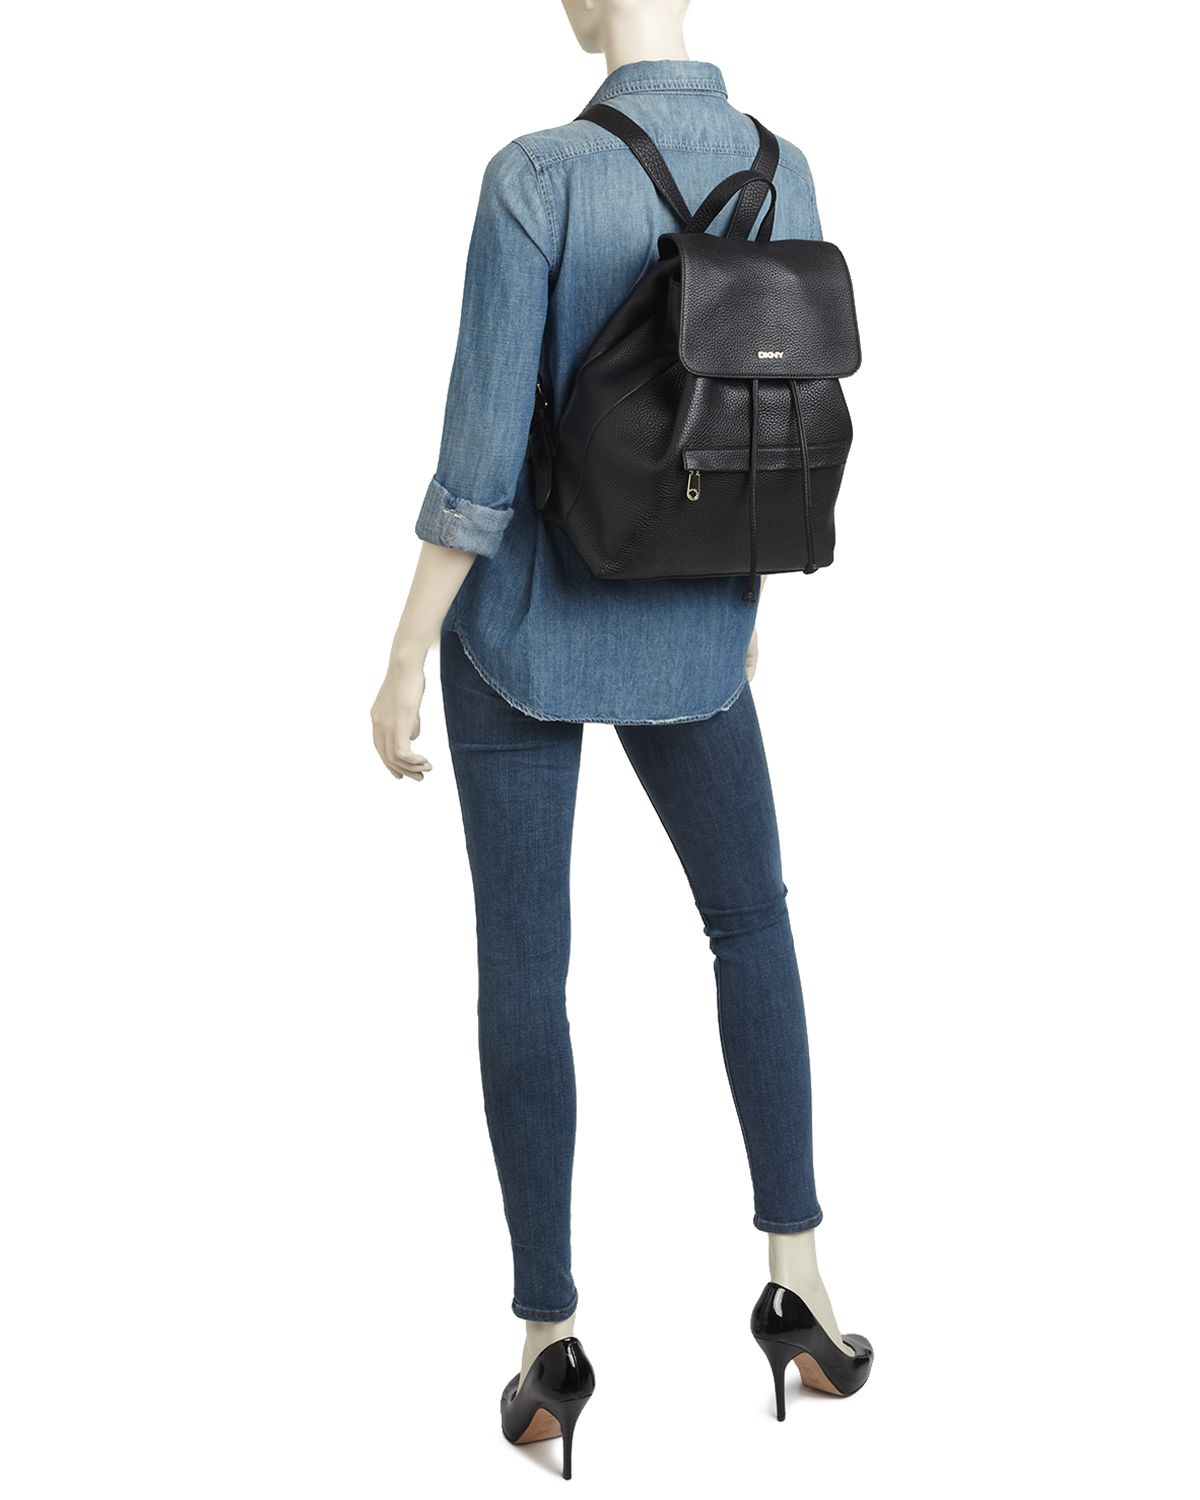 Dkny Backpack - Tribeca in Black | Lyst : dkny quilted rucksack - Adamdwight.com